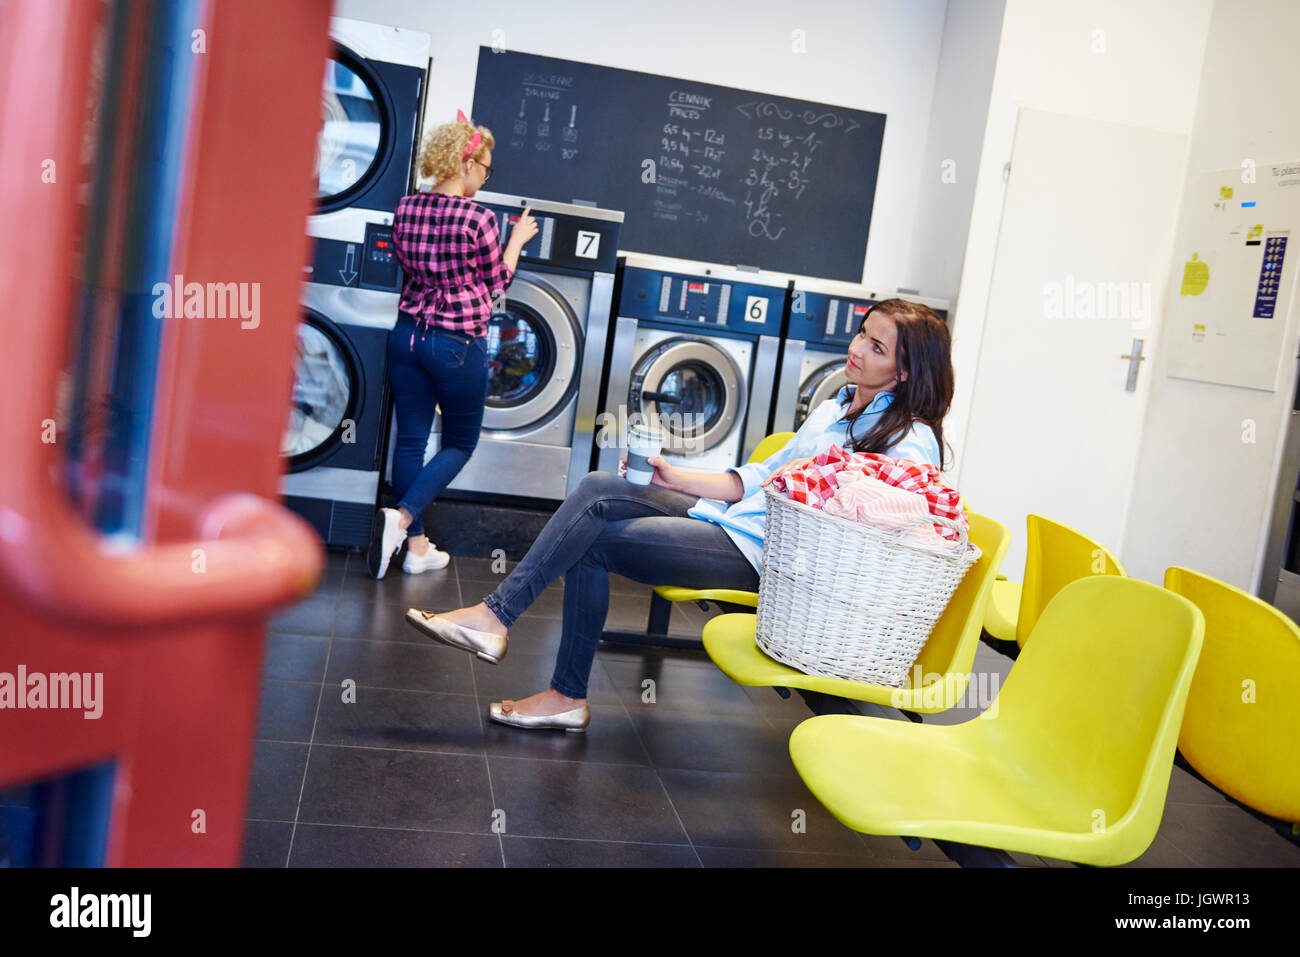 Bored woman waiting in laundrette - Stock Image